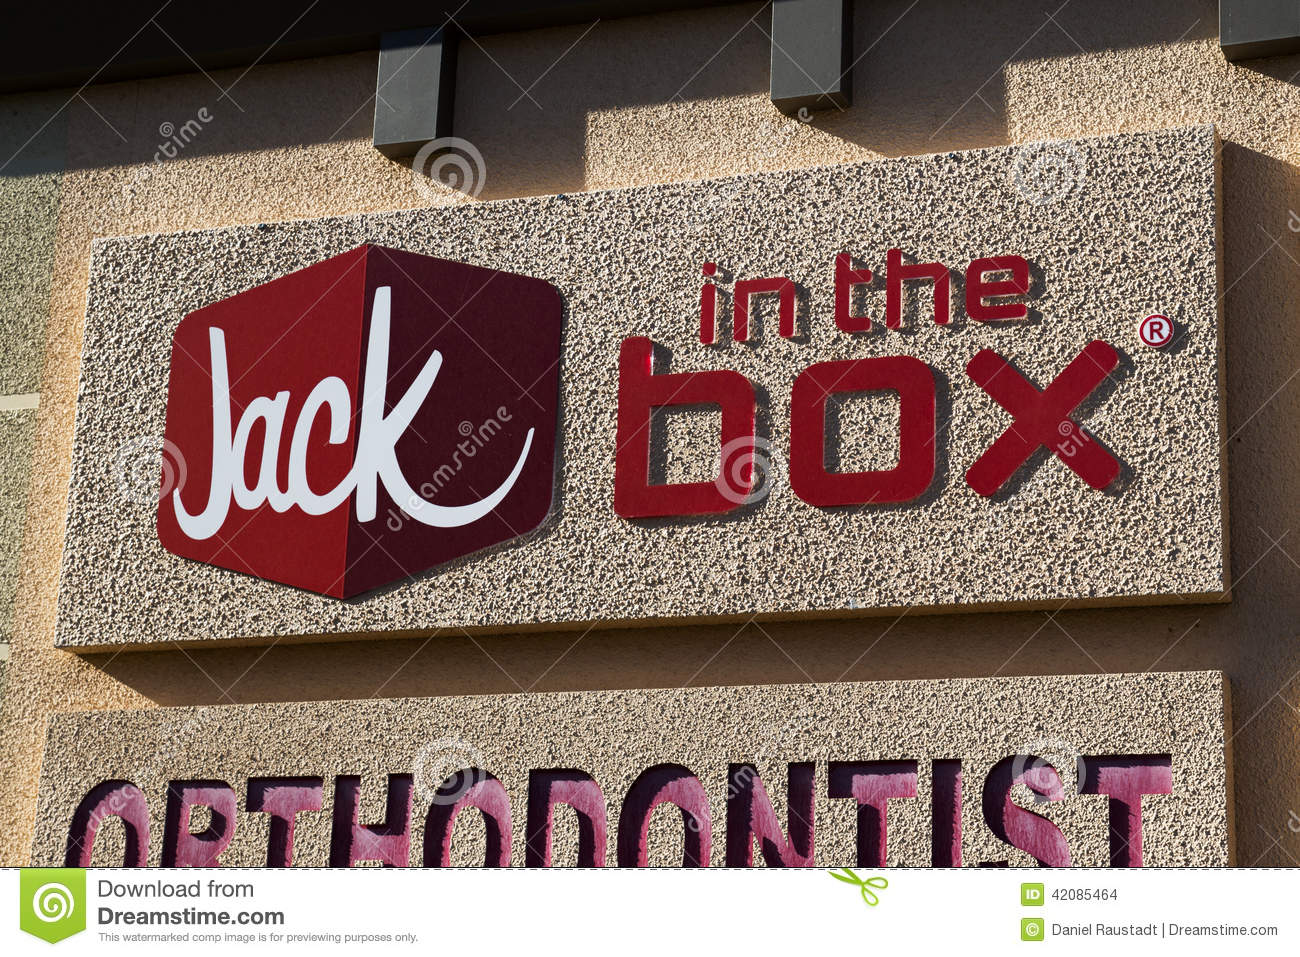 jack in the box franchise Jack in the box selling qdoba for $305 million jack in the box inc is selling its qdoba chain to private-equity firm apollo global management llc for $305 million as it looks to grow its less capital-intensive, franchise-focused business model.